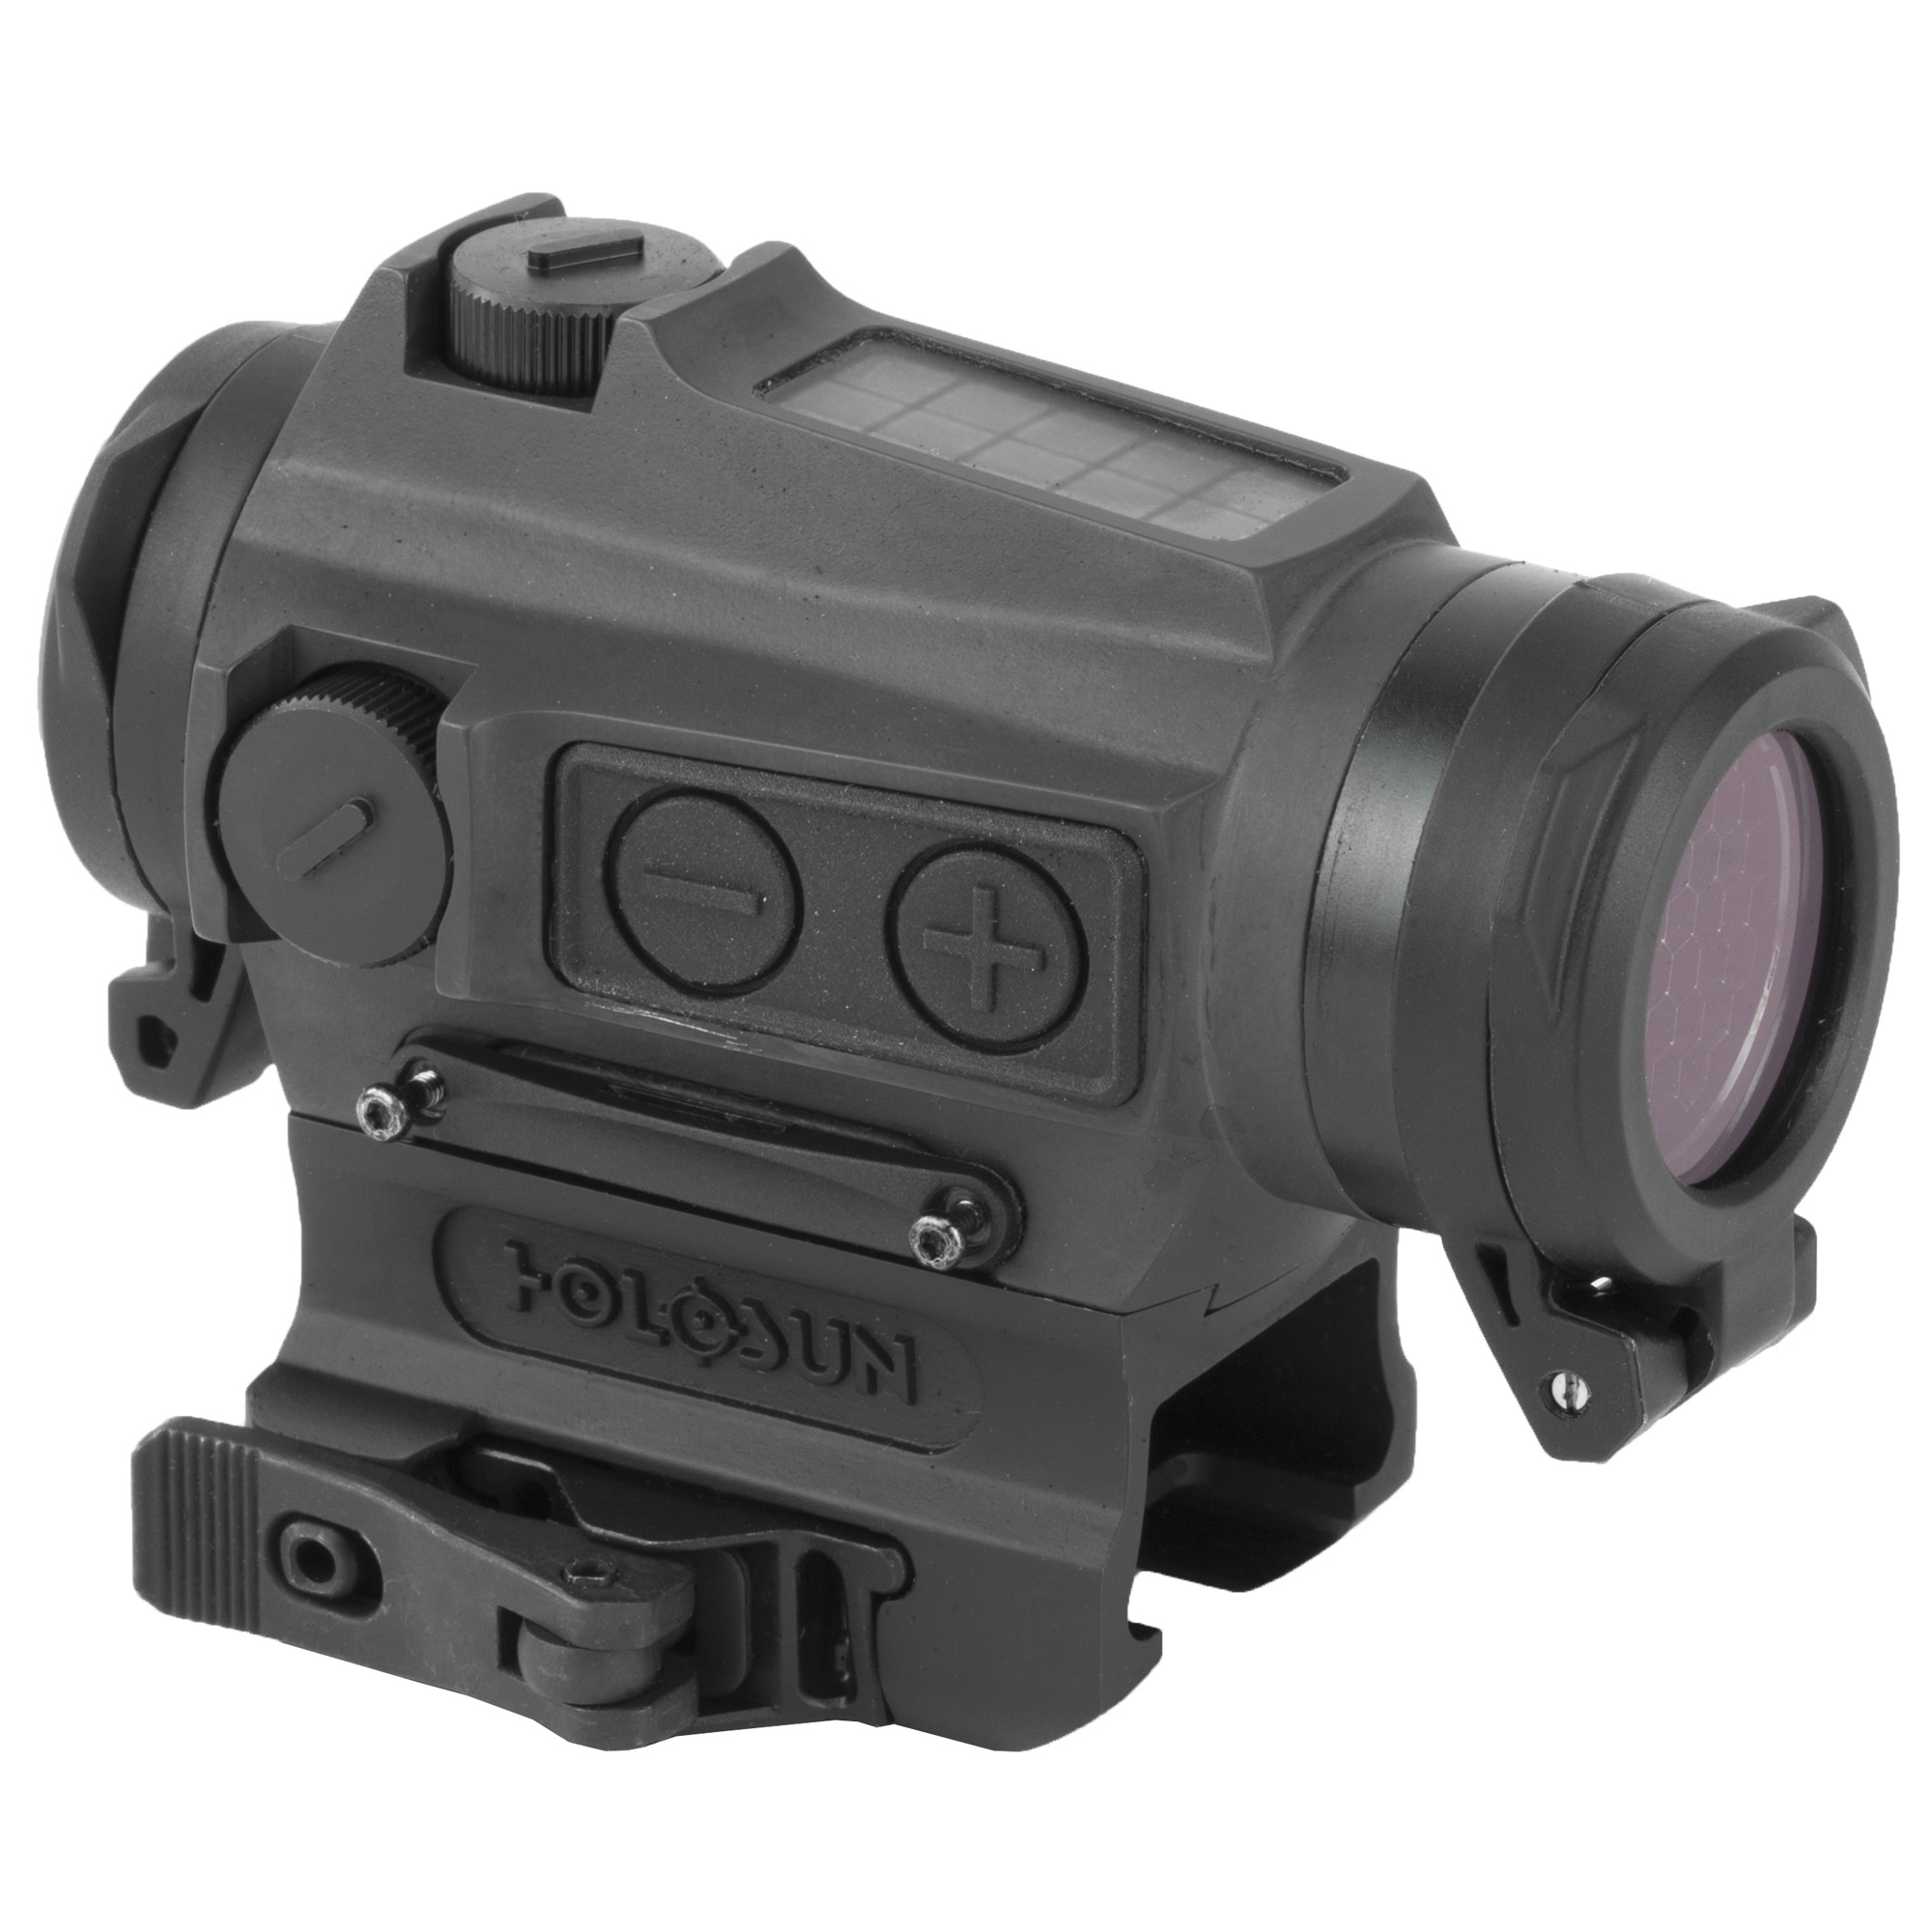 Holosun HE515CT-RD, Micro Titanium Red Dot, Red Reticle, Three Different Reticles, Solar, QD Mount, Black